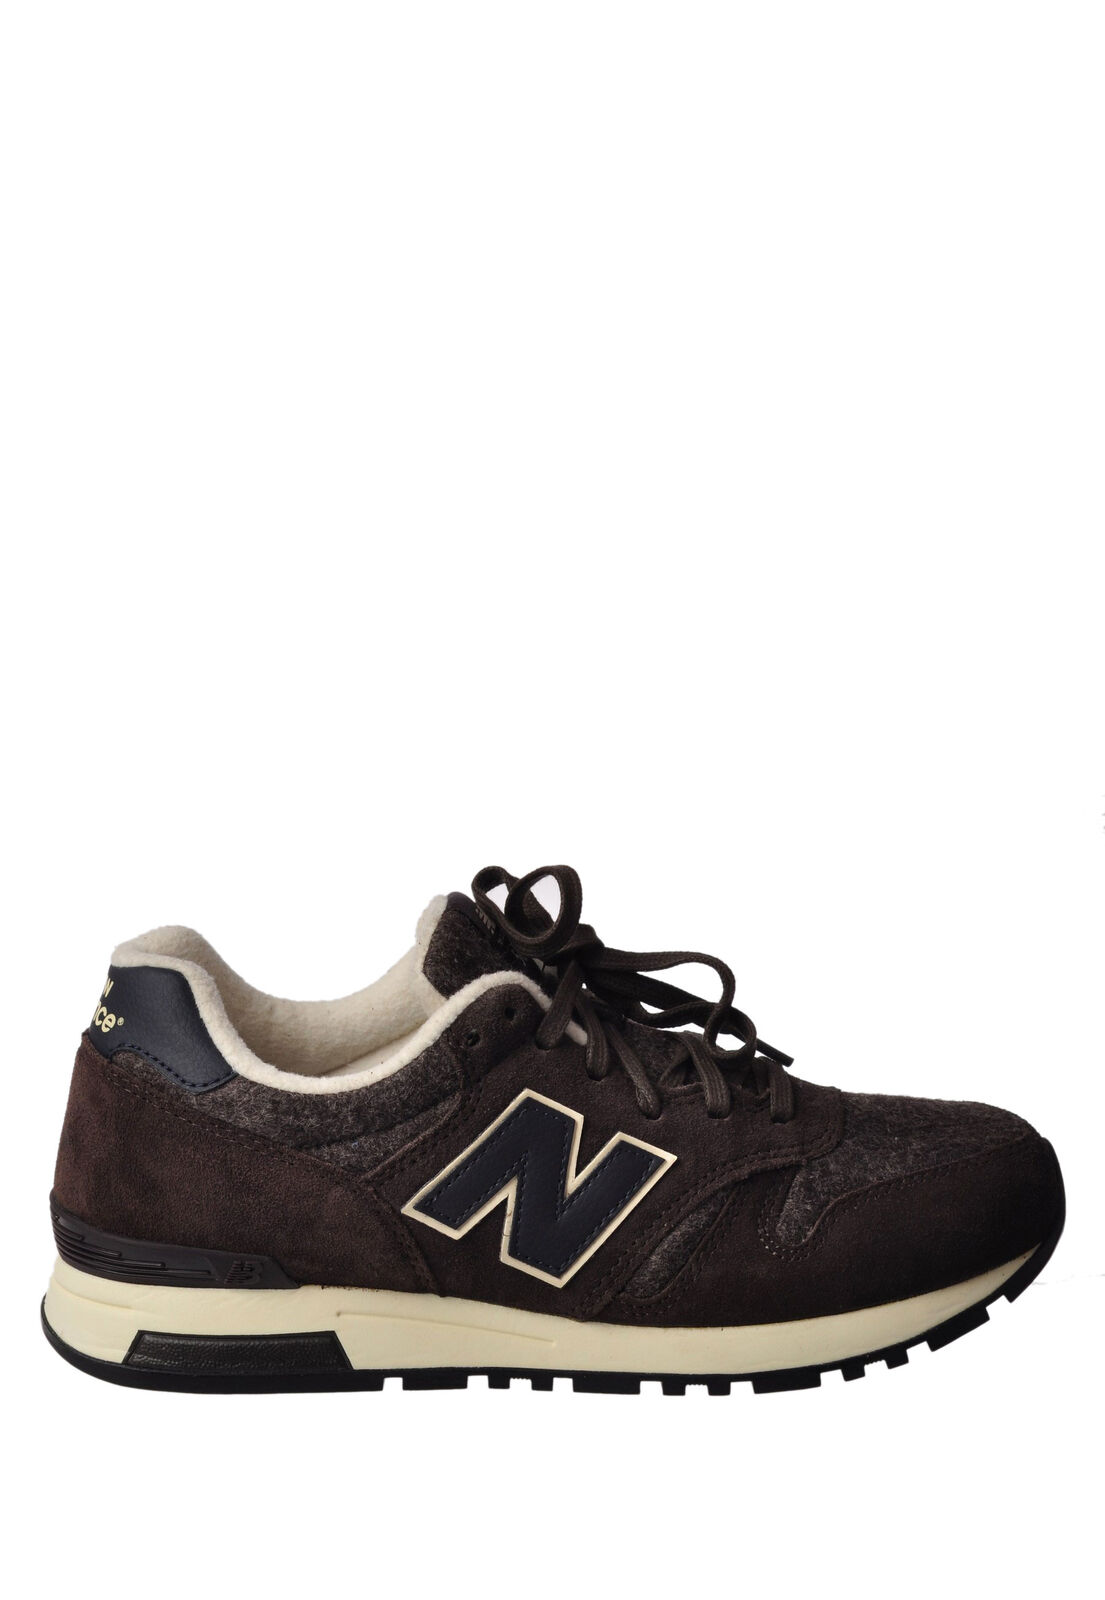 Scarpe casual da uomo  New Balance - Shoes-Sneakers low - Man - Brown - 889408G180741